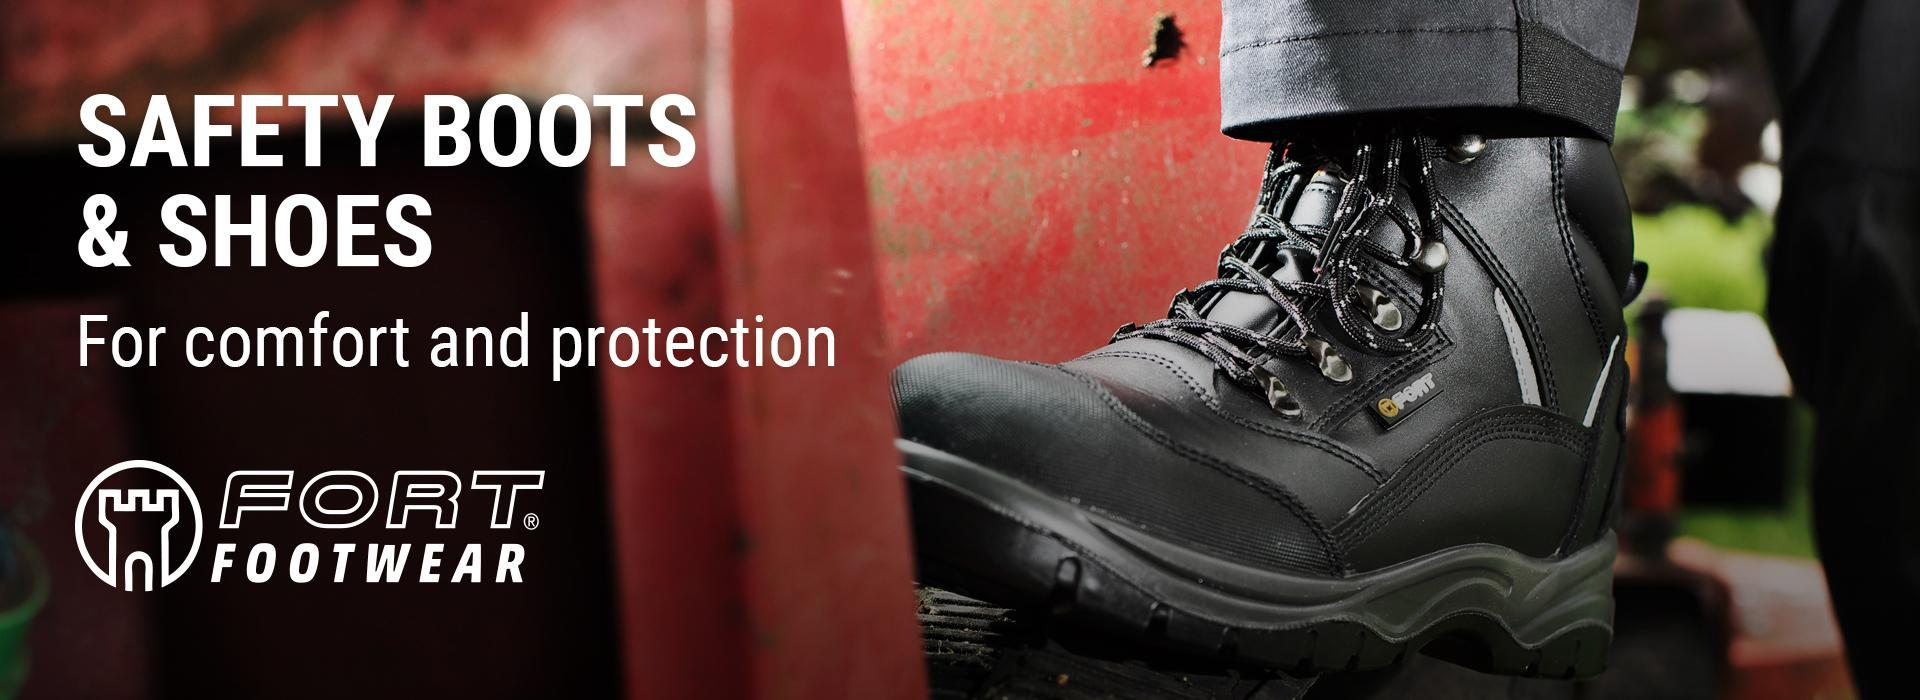 Fort safety boots